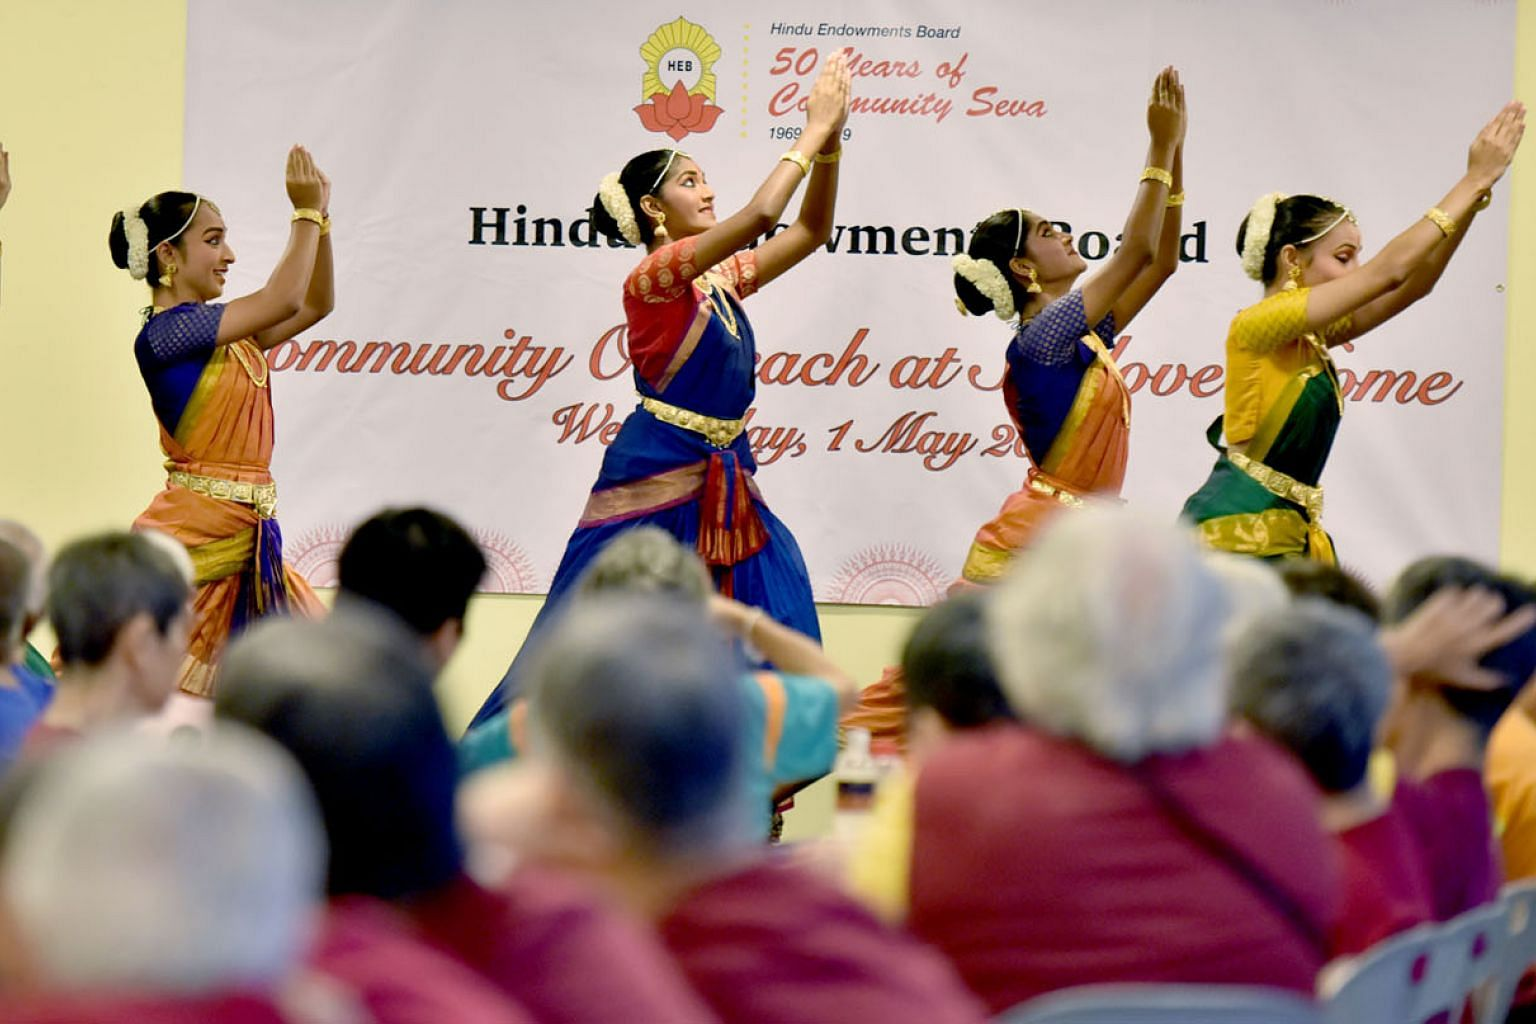 Dancers from Apsaras Arts dance group performing for the residents of Sunlove Home yesterday as part of the Hindu Endowments Board's celebration of its 50th anniversary. The board is marking the milestone by giving back to the community. Some members